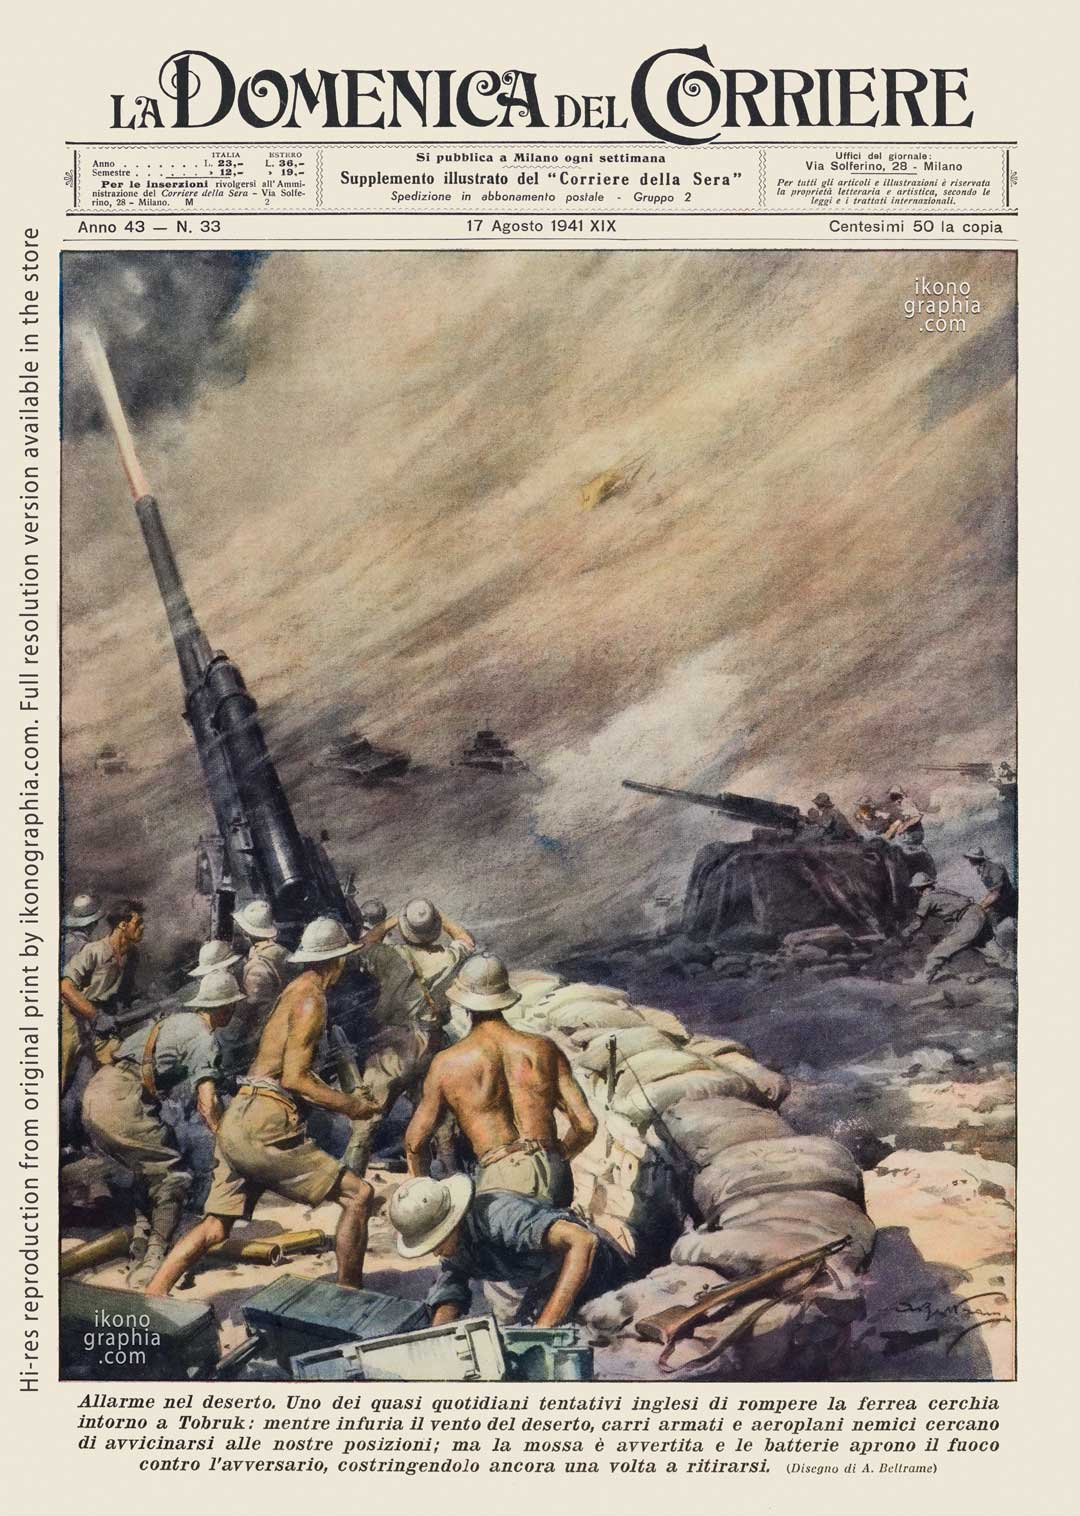 """A plate by Achille Beltrame for """"La Domenica del Corriere"""". Italians push-off the British attacks to keep Tobruk."""